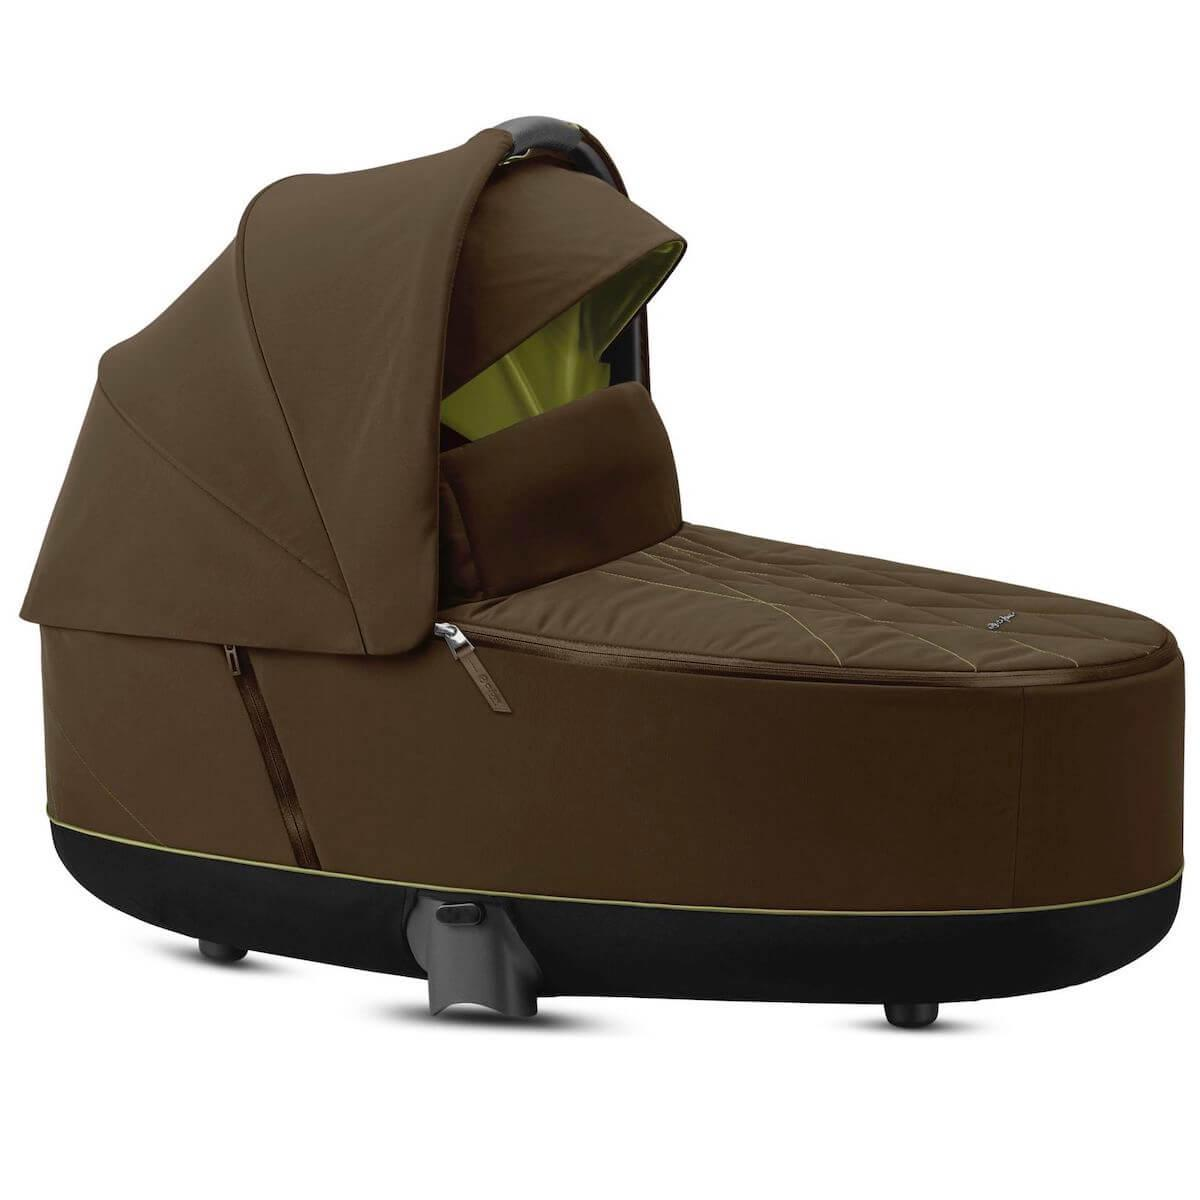 Nacelle luxe PRIAM Cybex Khaki green-khaki brown